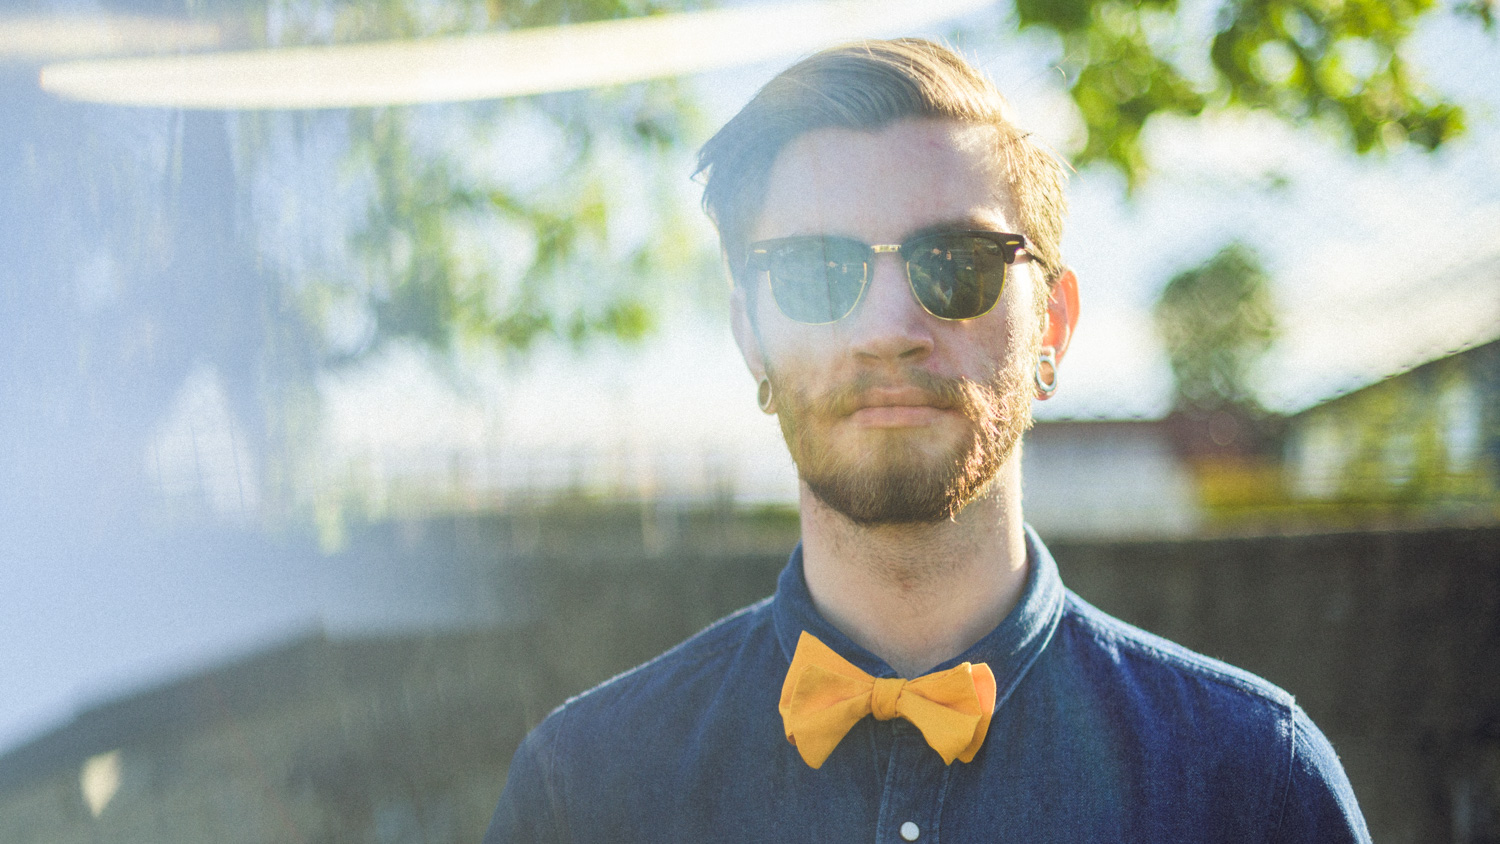 Eirik Halvorsen - Real Bow Ties web-107.jpg